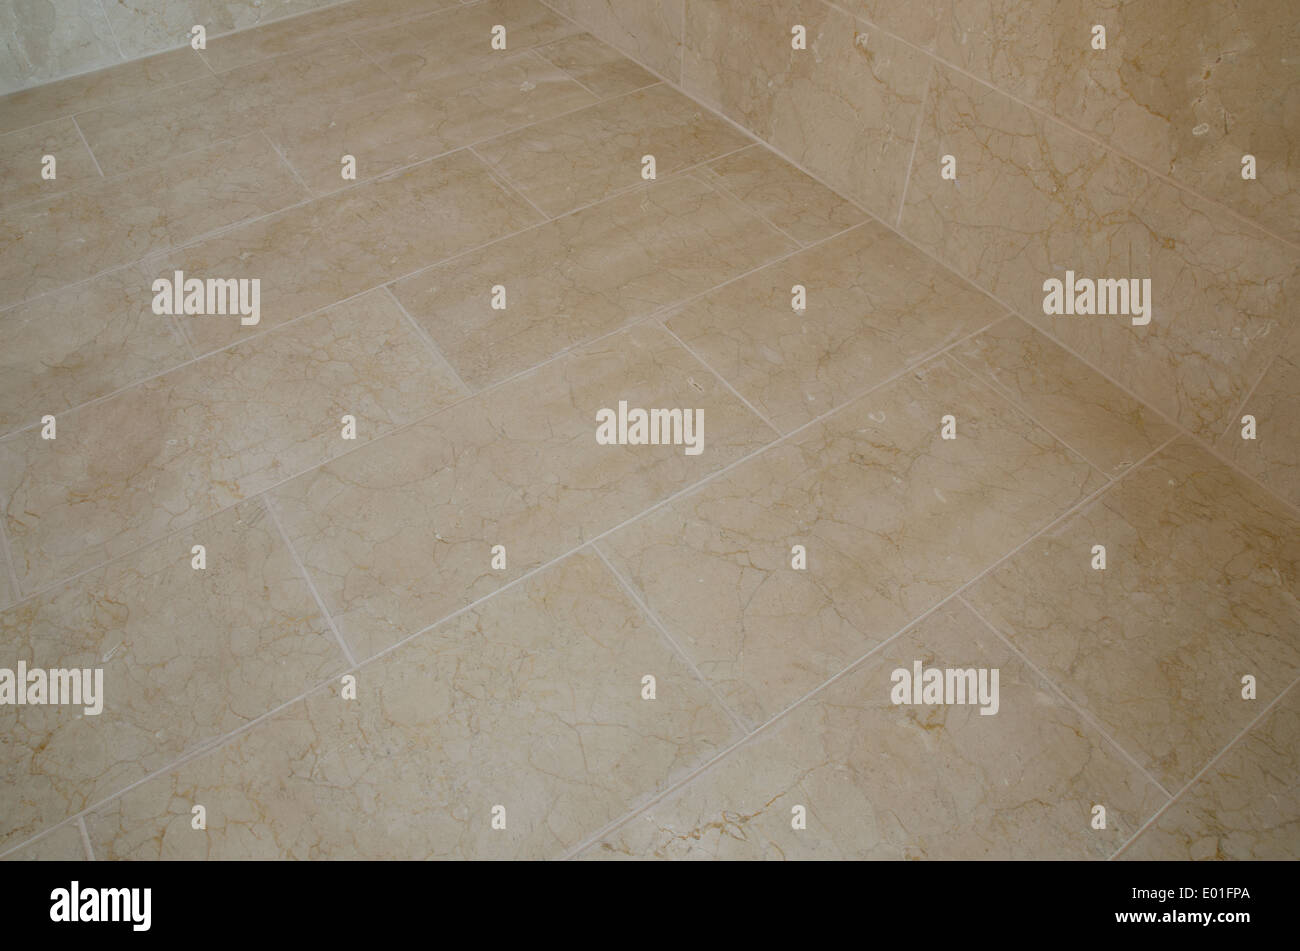 A Newly Tiled Bathroom Floor With Marble Tiles   Stock Image